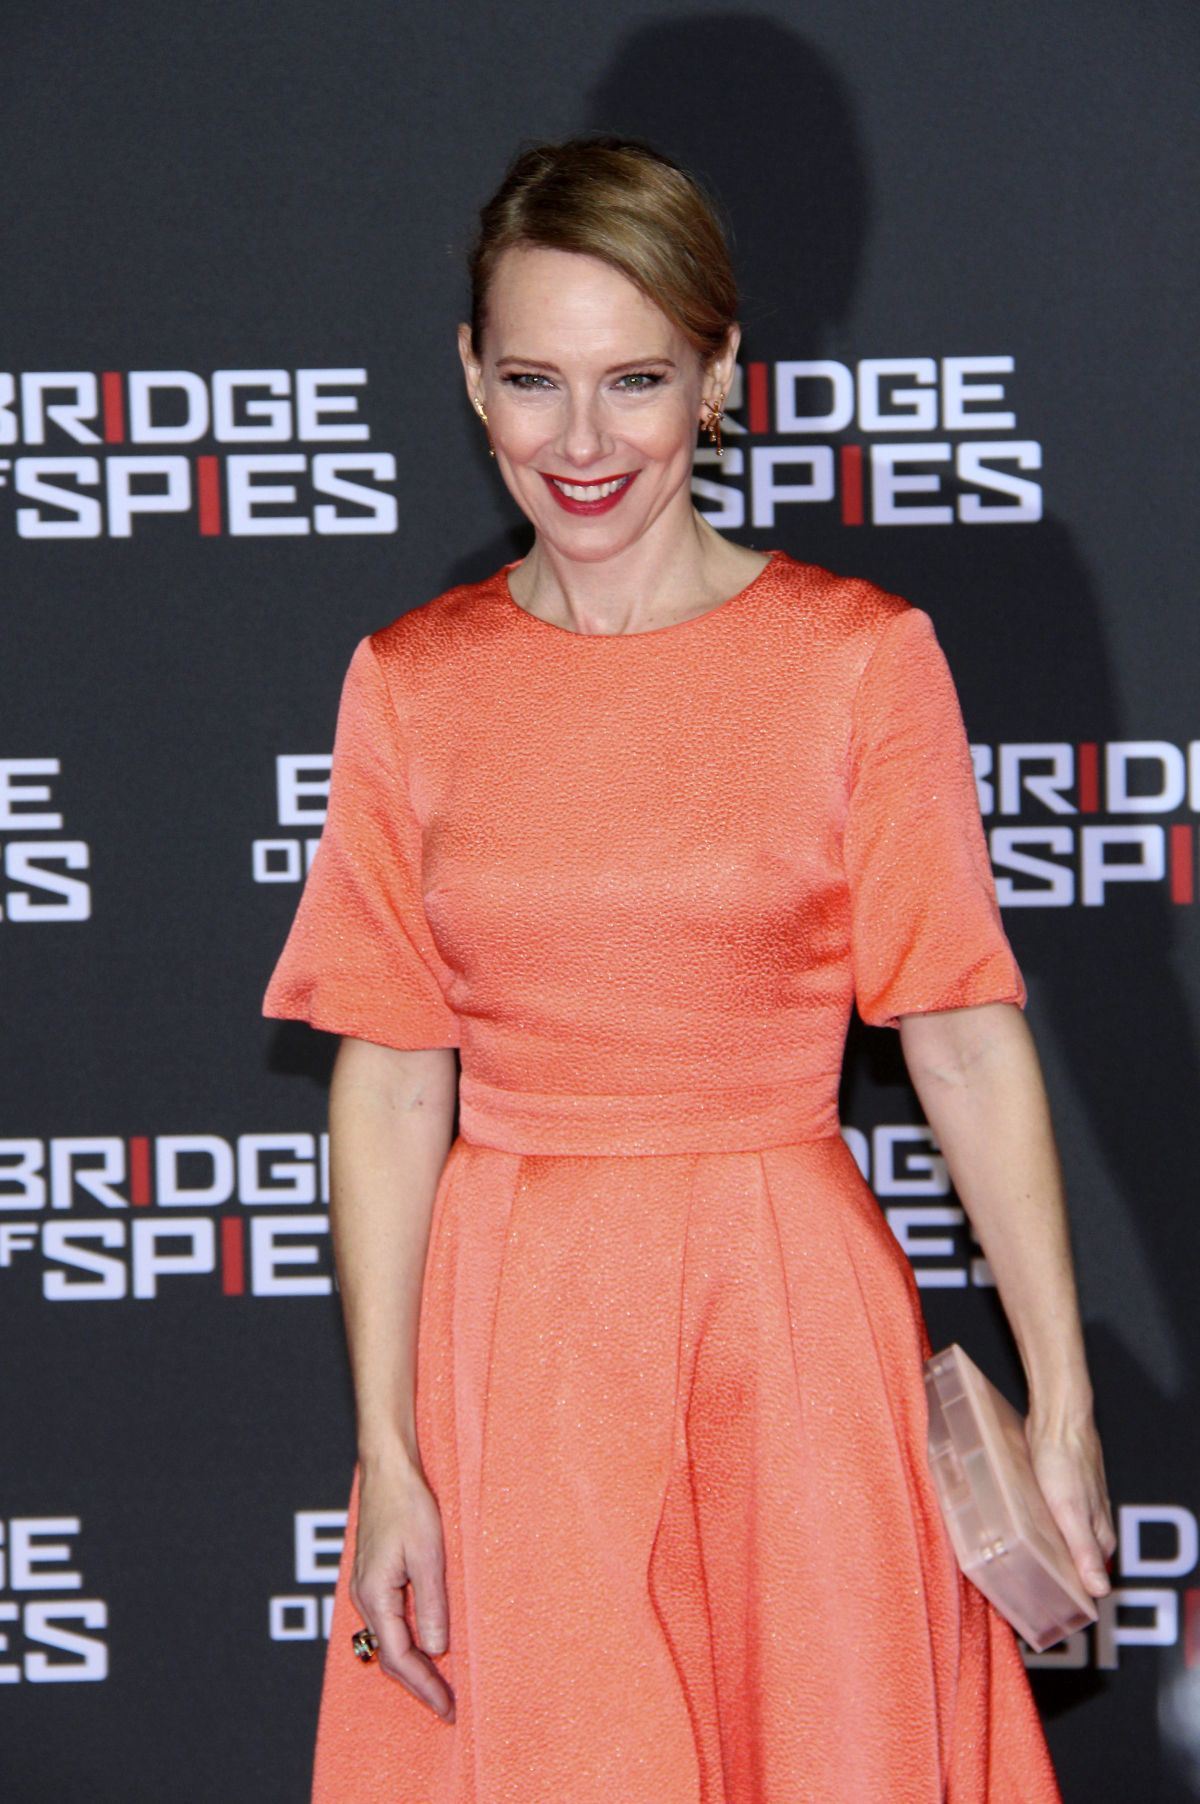 AMY RYAN at Bridge of Spies Premiere at Zoo Palast in Berlin 11/13/2015